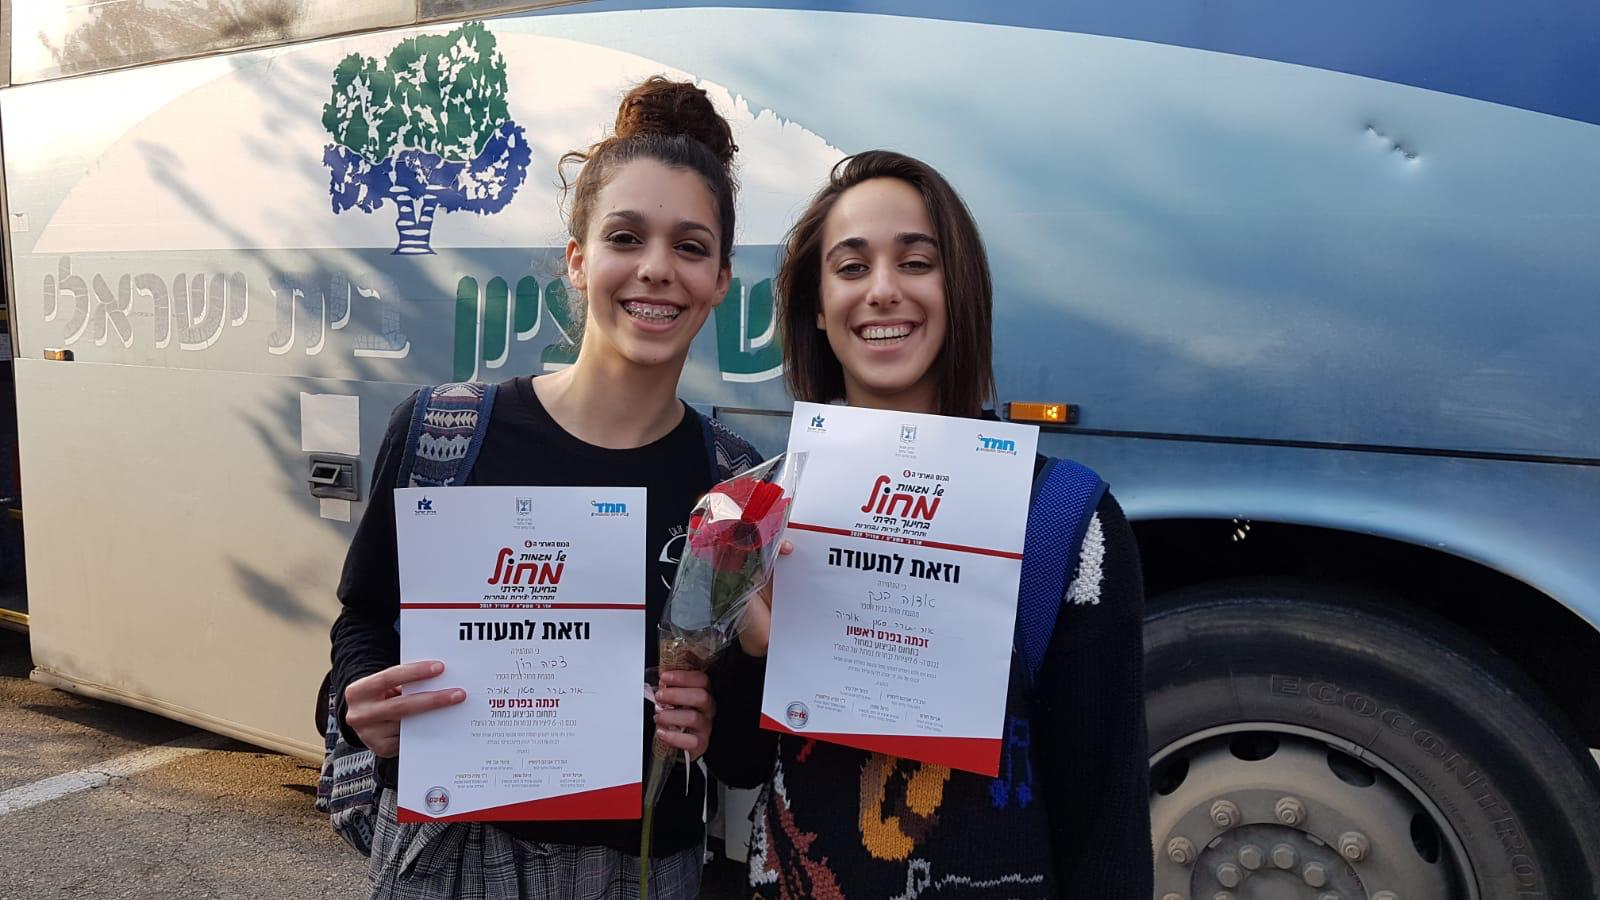 Students win scholarships for dance awards